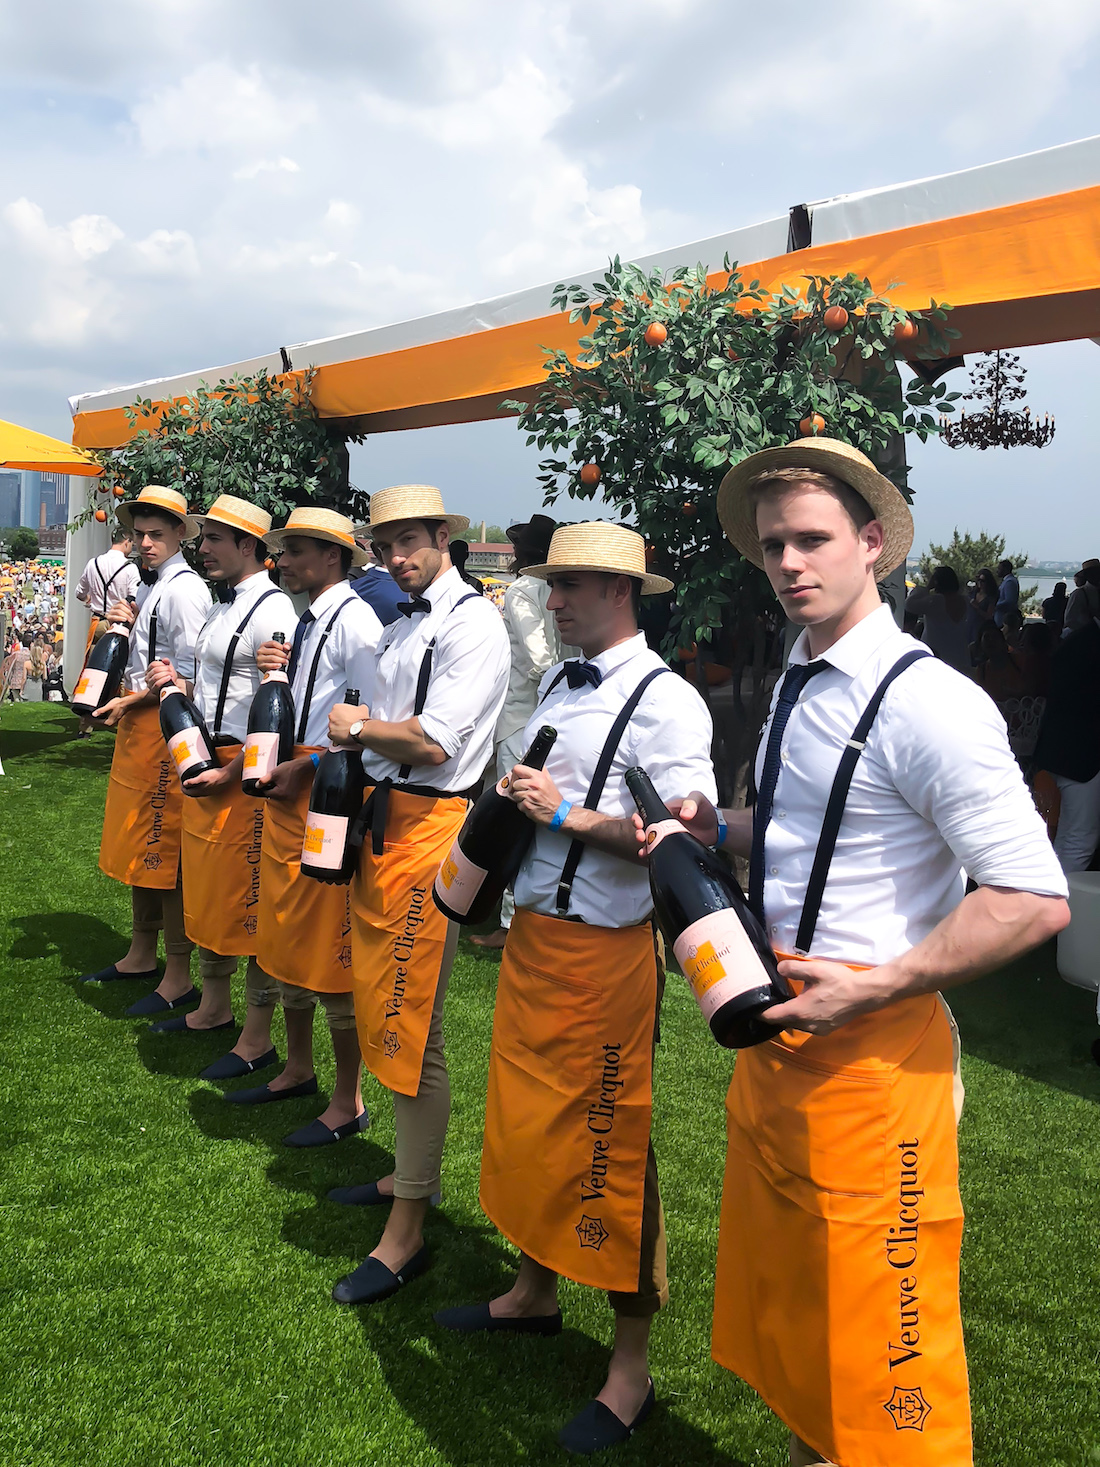 models in the Veuve Clicquot Polo Classic 2018 - The Stripe